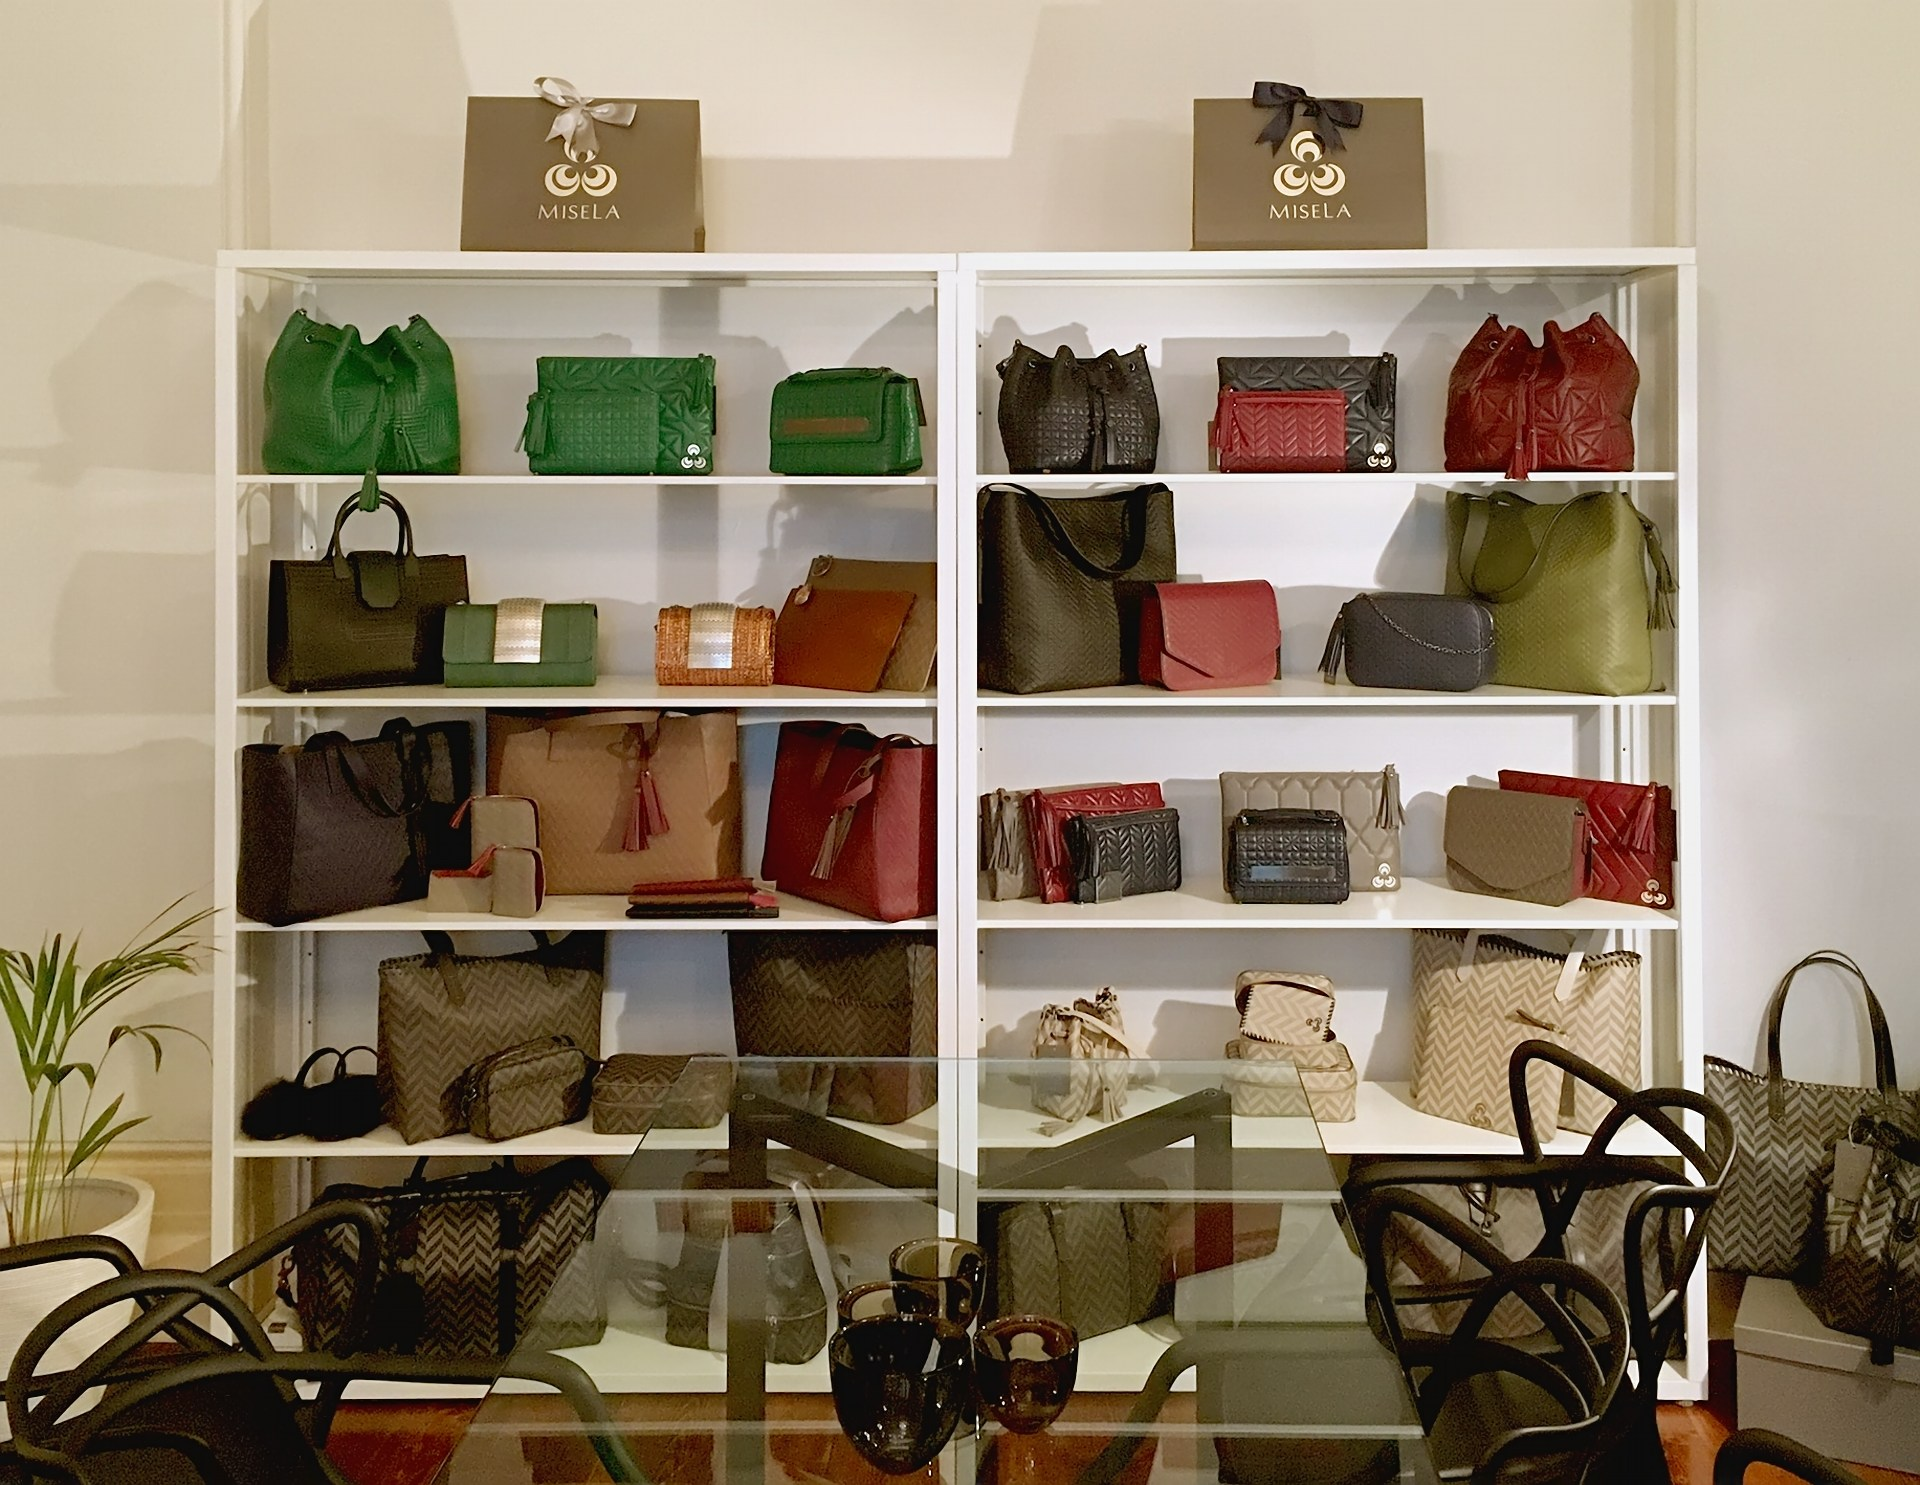 Visit Our Showroom in Chelsea, London